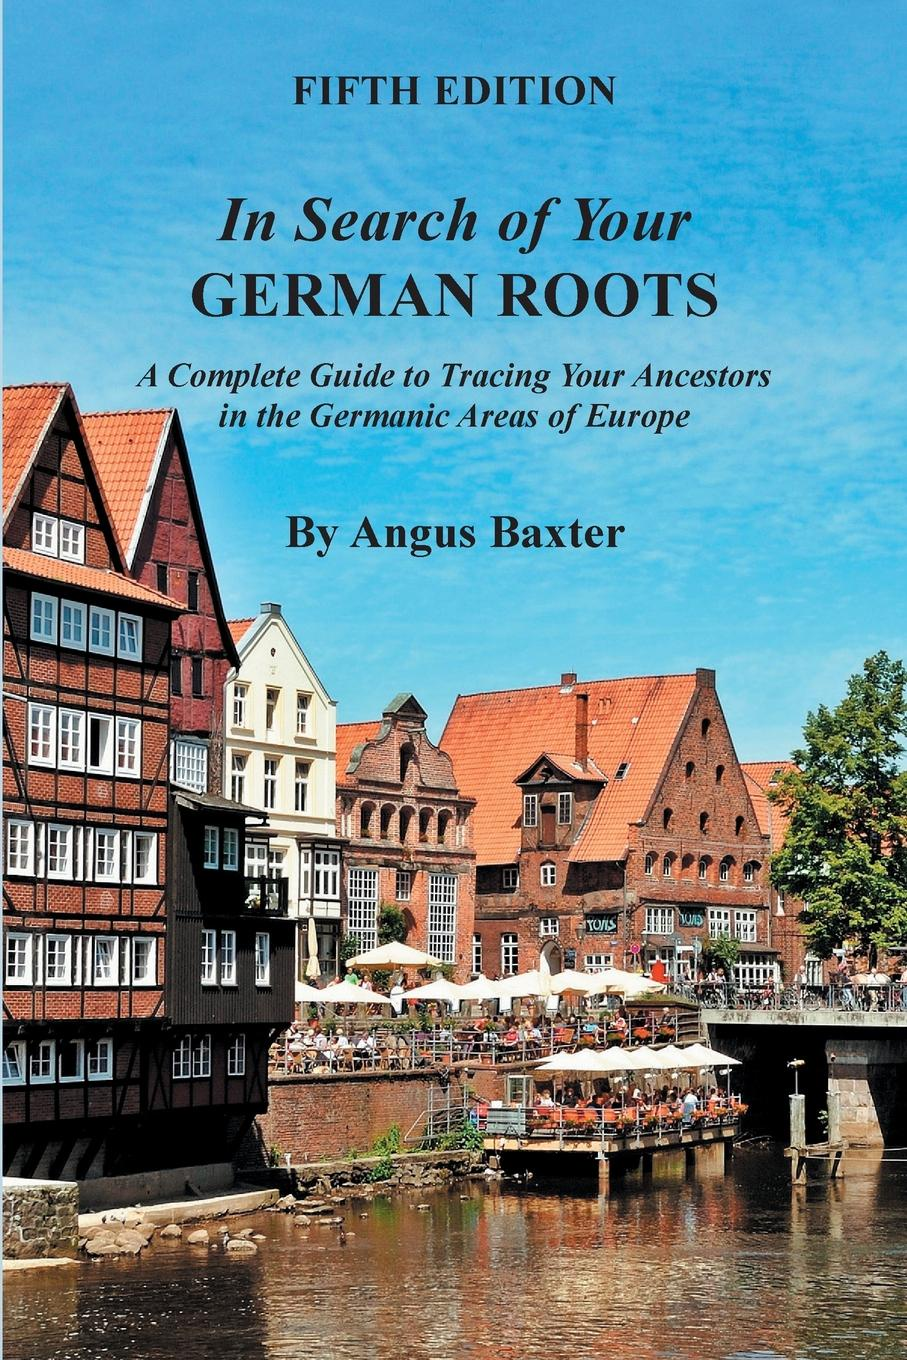 Angus Baxter In Search of Your German Roots. A Complete Guide to Tracing Your Ancestors in the Germanic Areas of Europe. Fifth Edition richard l epstein the pocket guide to critical thinking fifth edition